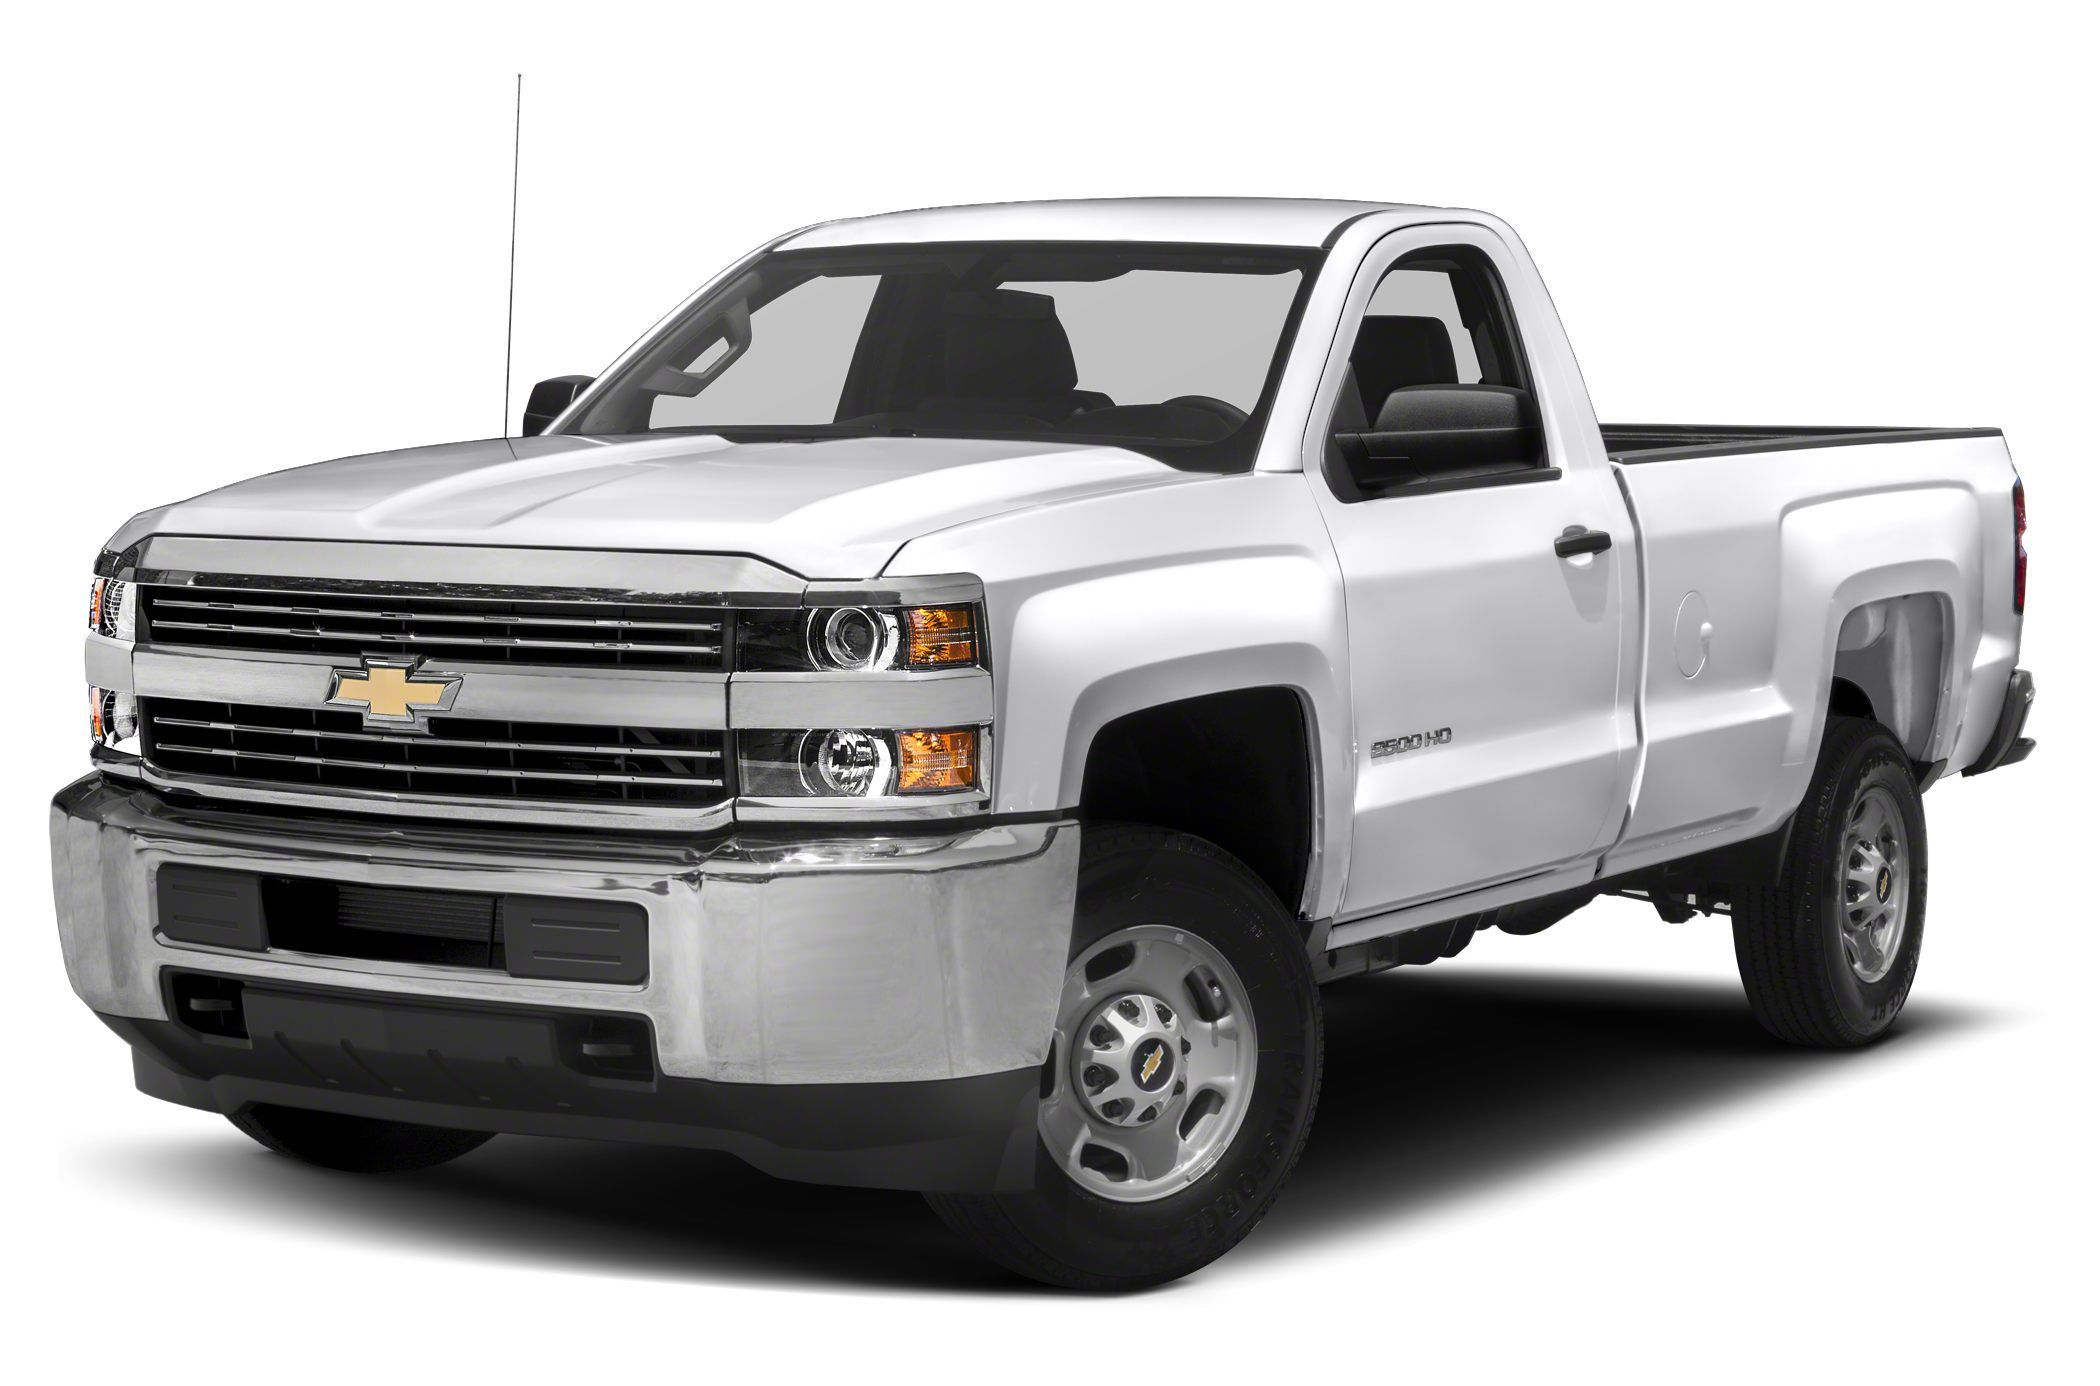 2017 Chevy Silverado 1500 Towing Capacity (With images